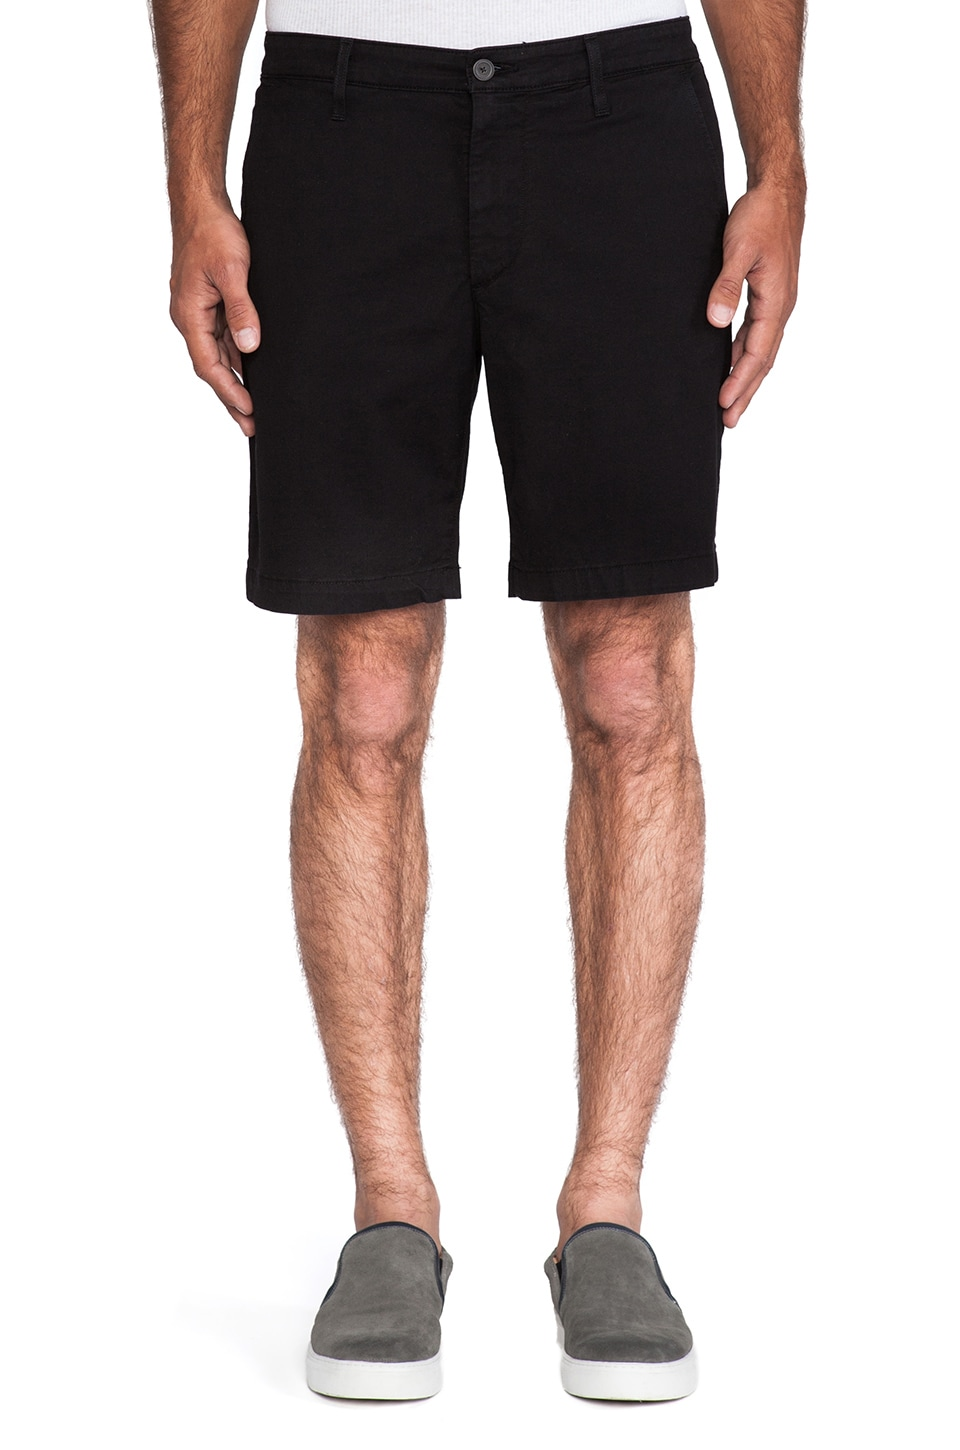 AG Adriano Goldschmied Slim Khaki Short in Black